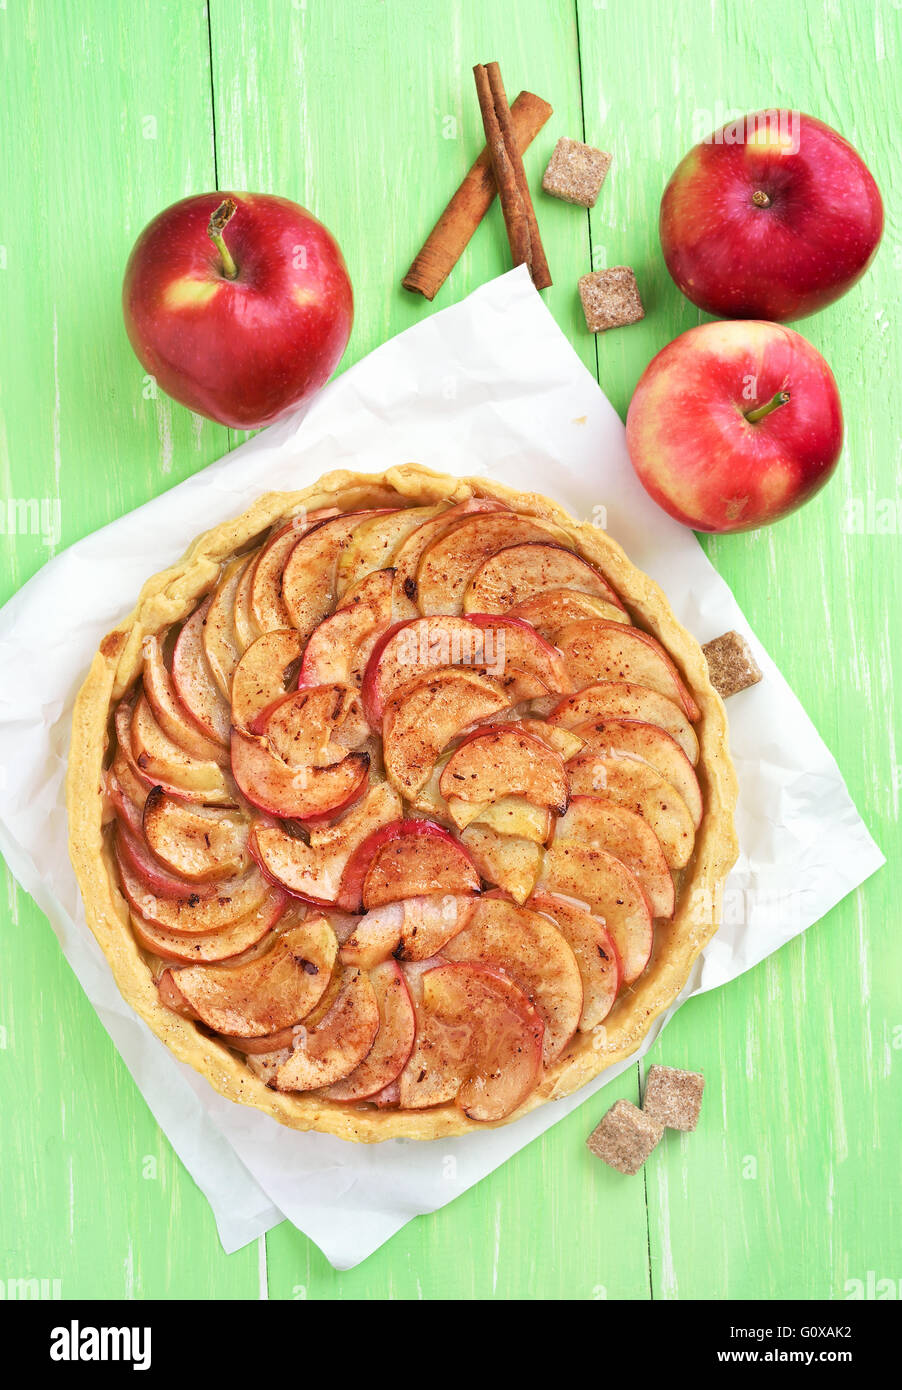 Apple pie on green wooden table, top view - Stock Image